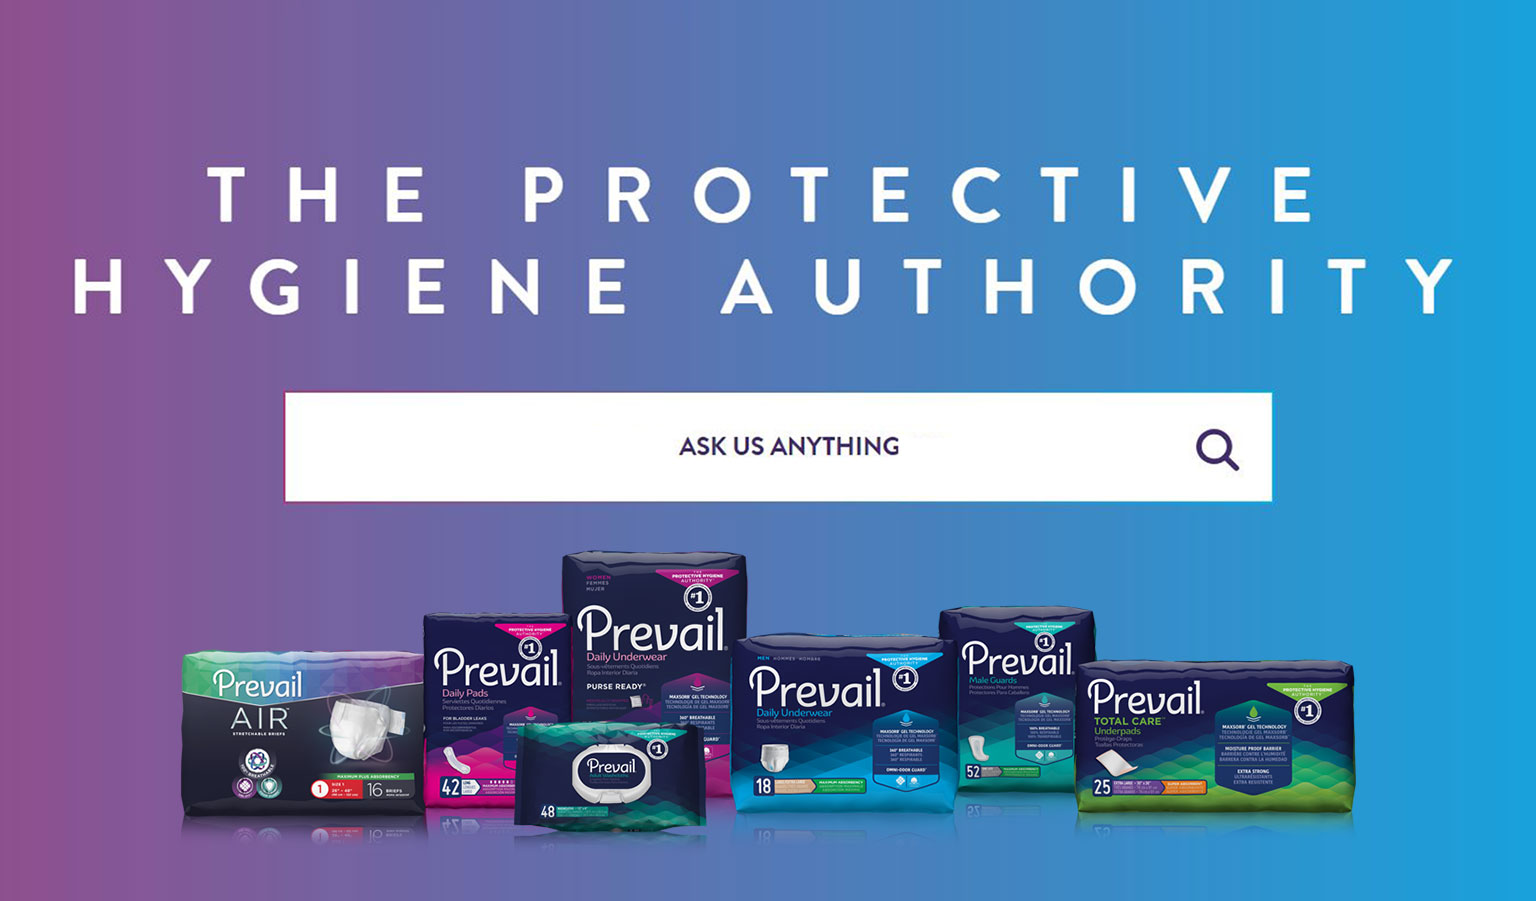 Prevail® The Protective Hygiene Authority